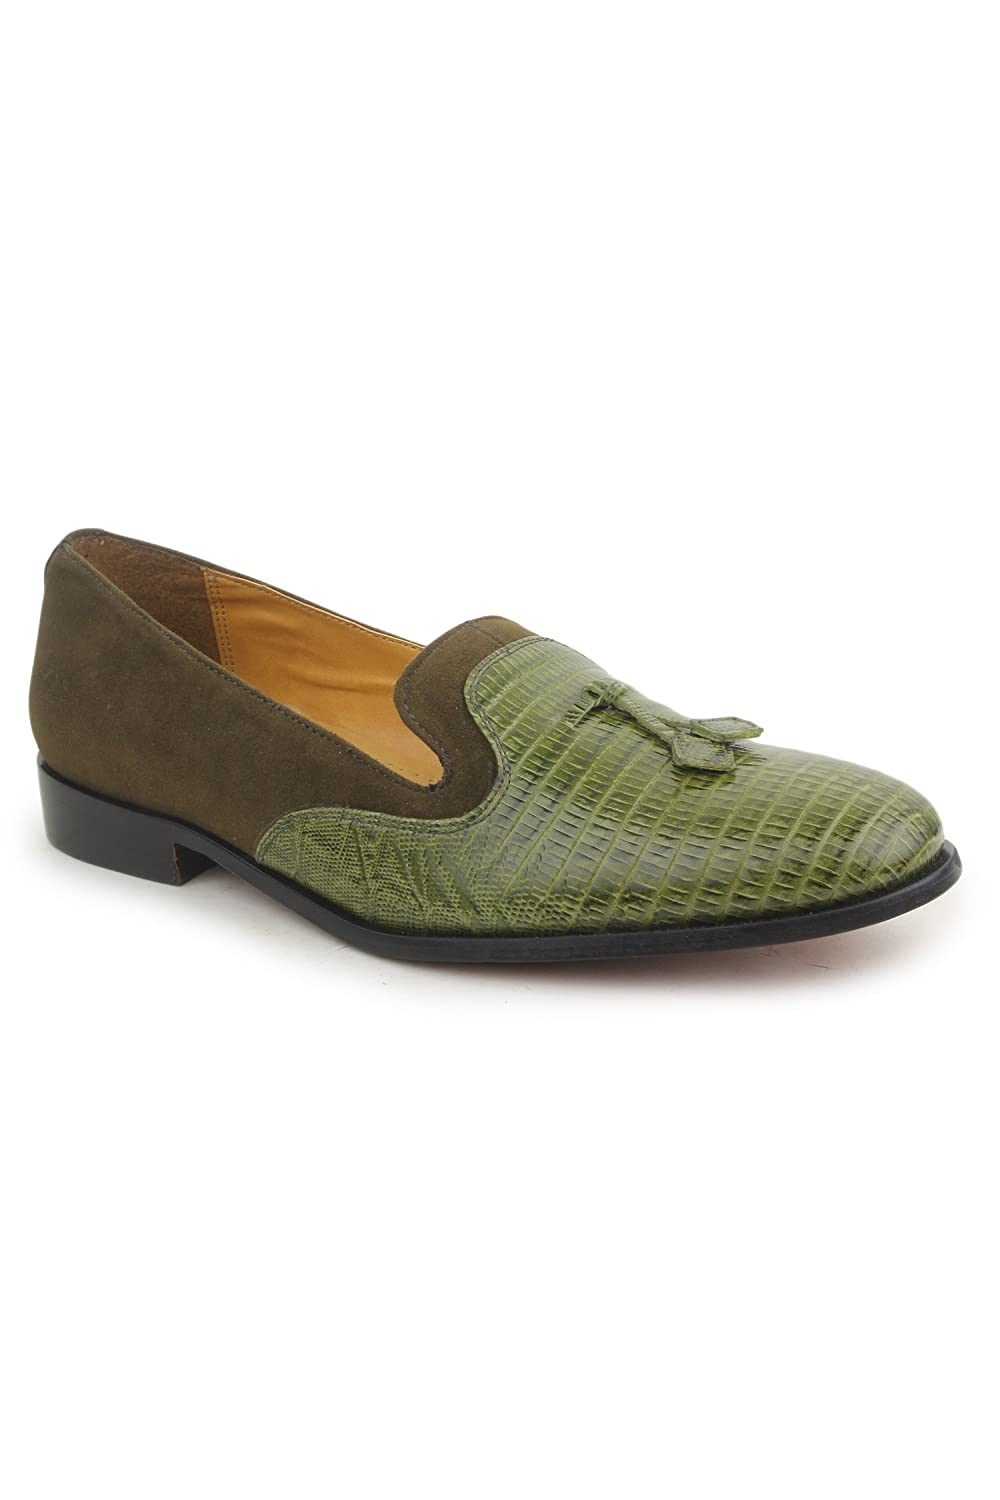 Liberty Mens//Big Boys PU Leather Padded Footbed Tassels//Slip-On//Loafer Shoes